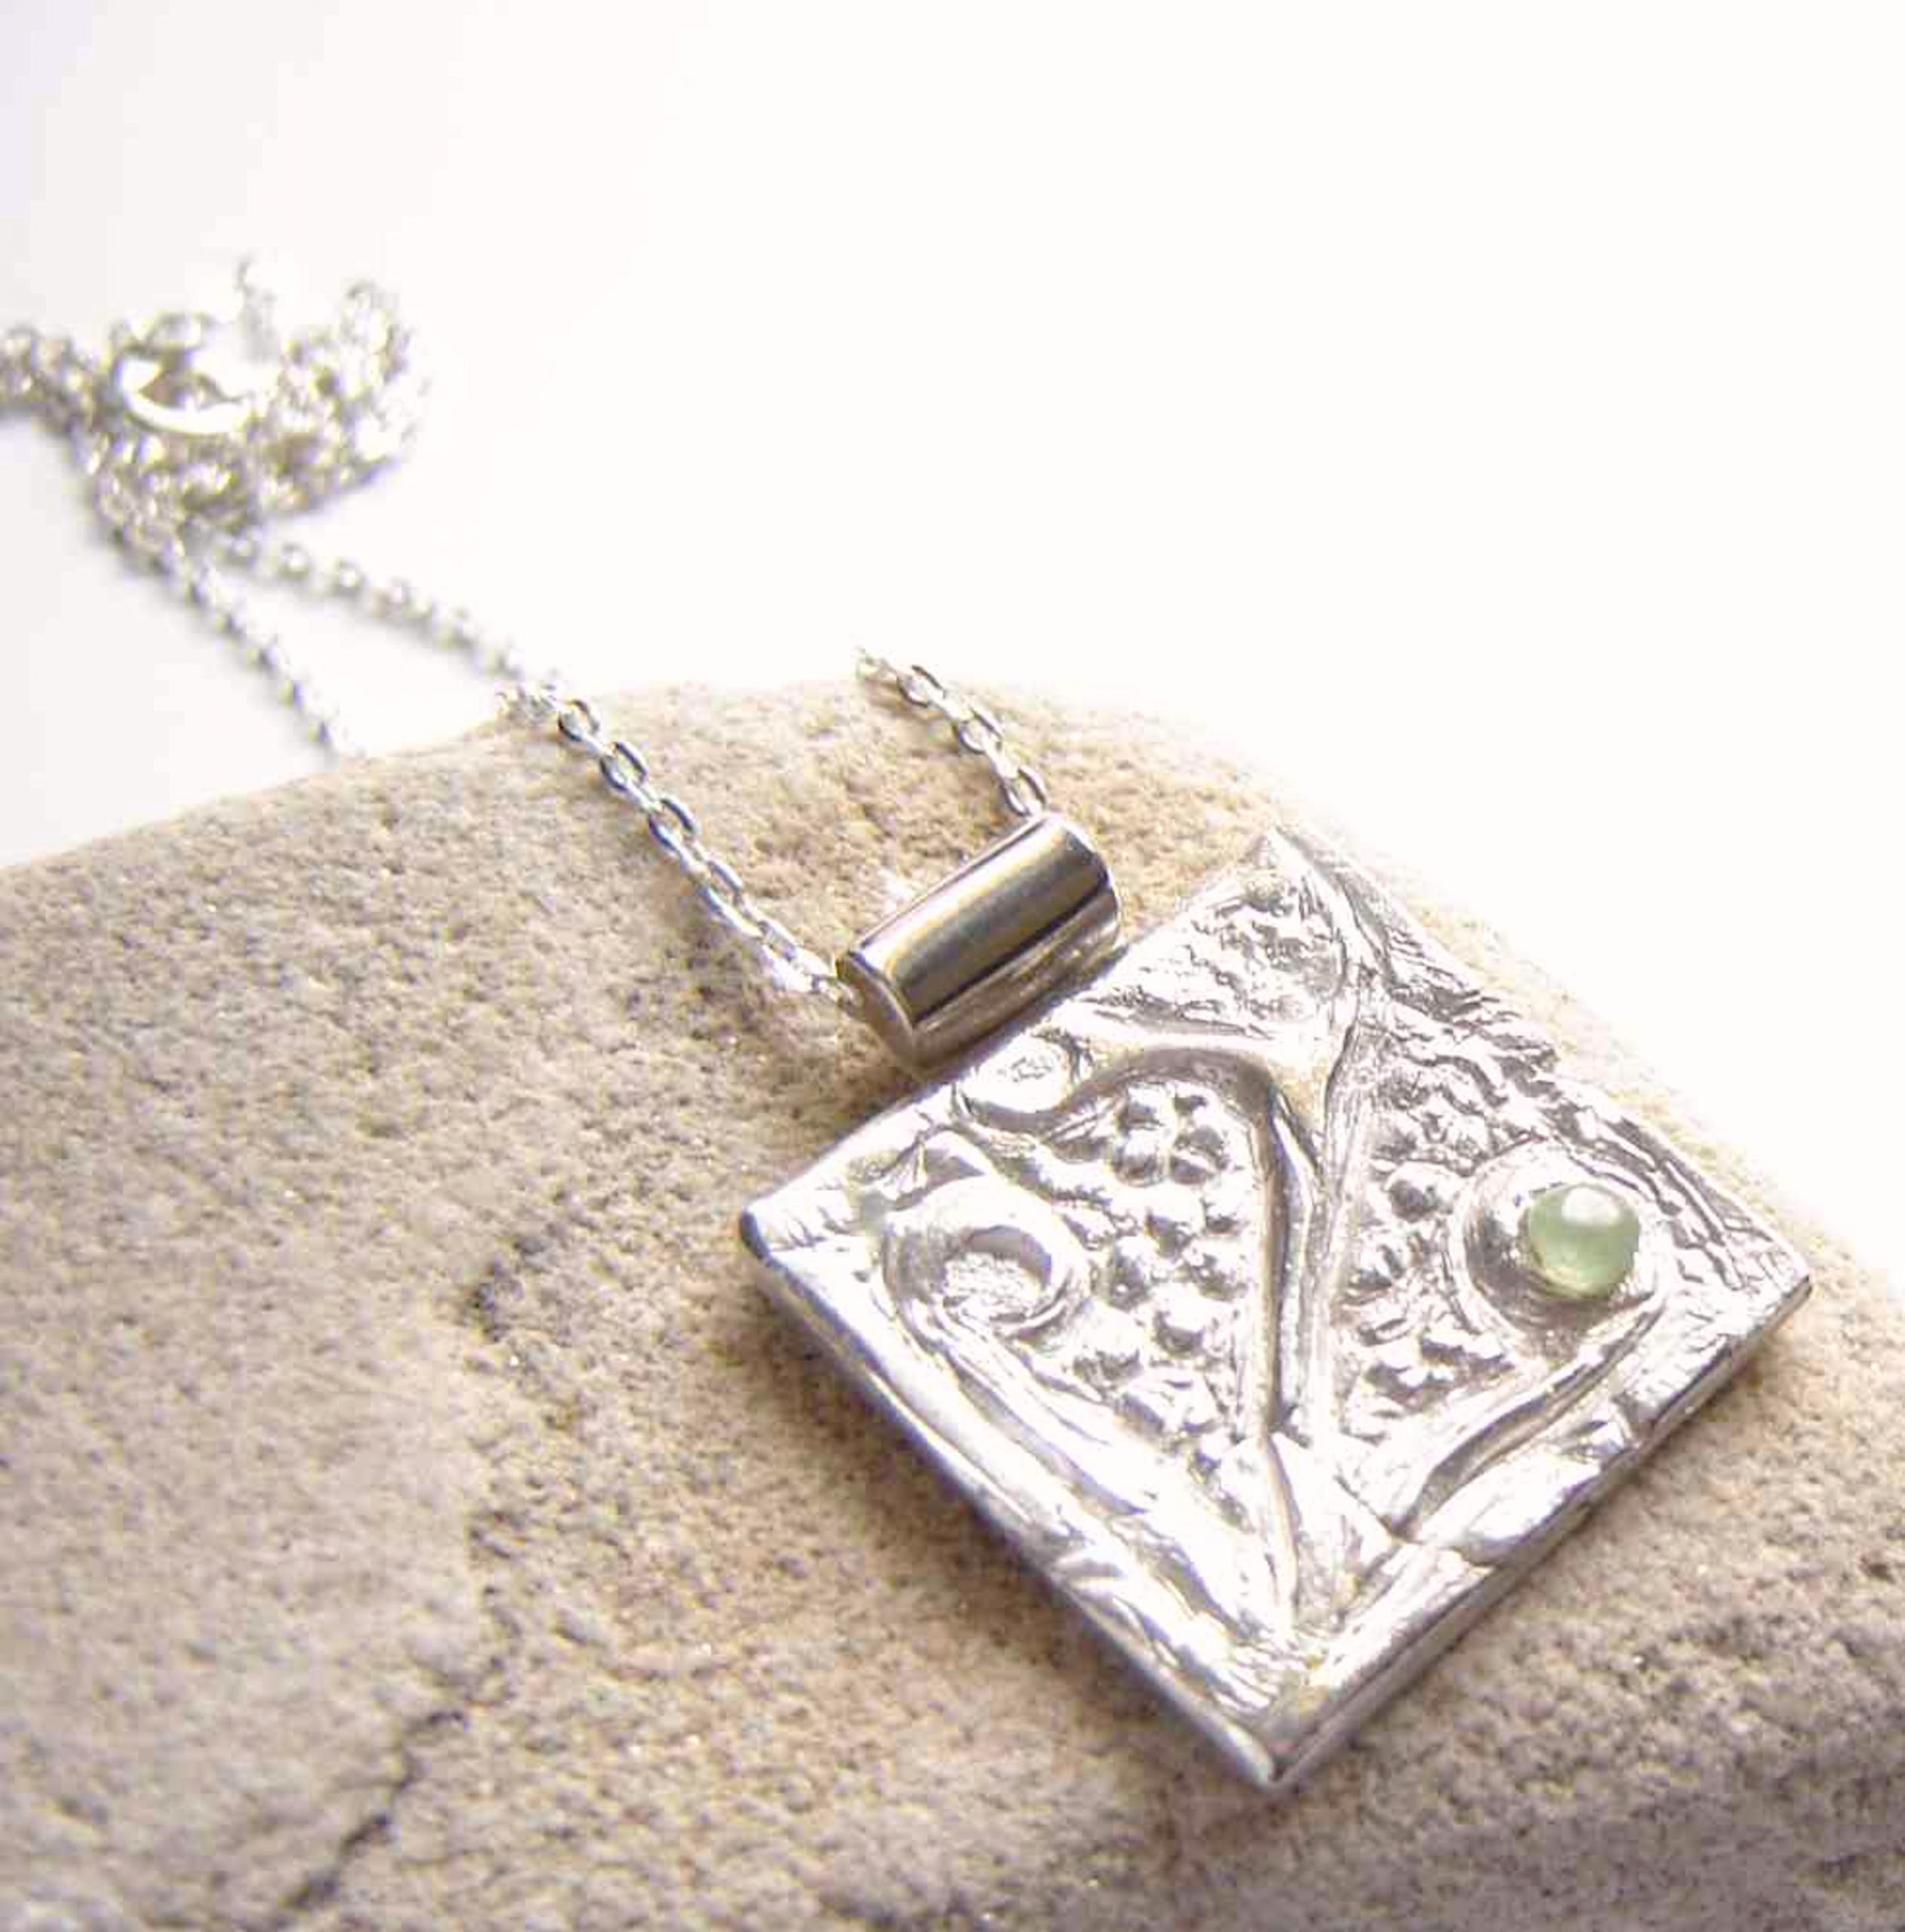 Silver jewellery, designed and handcrafted design in north-east England